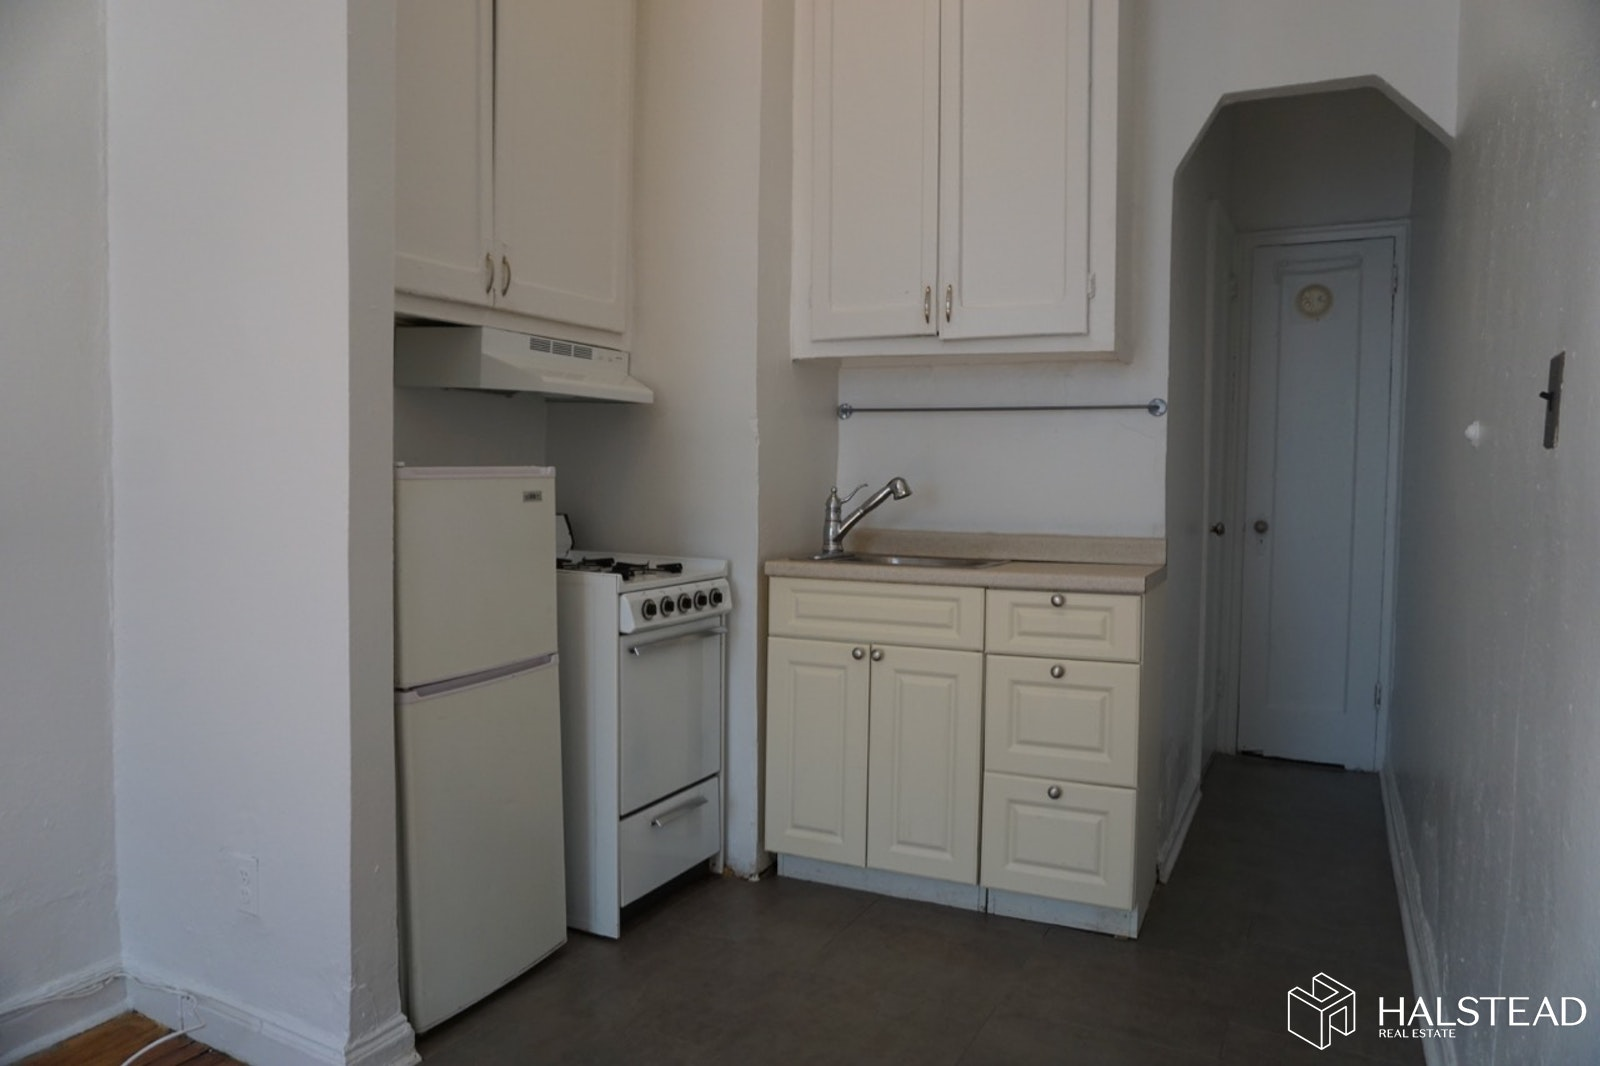 359 West 126th Street 1d, Upper Manhattan, NYC, 10027, $1,450, Rented Property, Halstead Real Estate, Photo 4